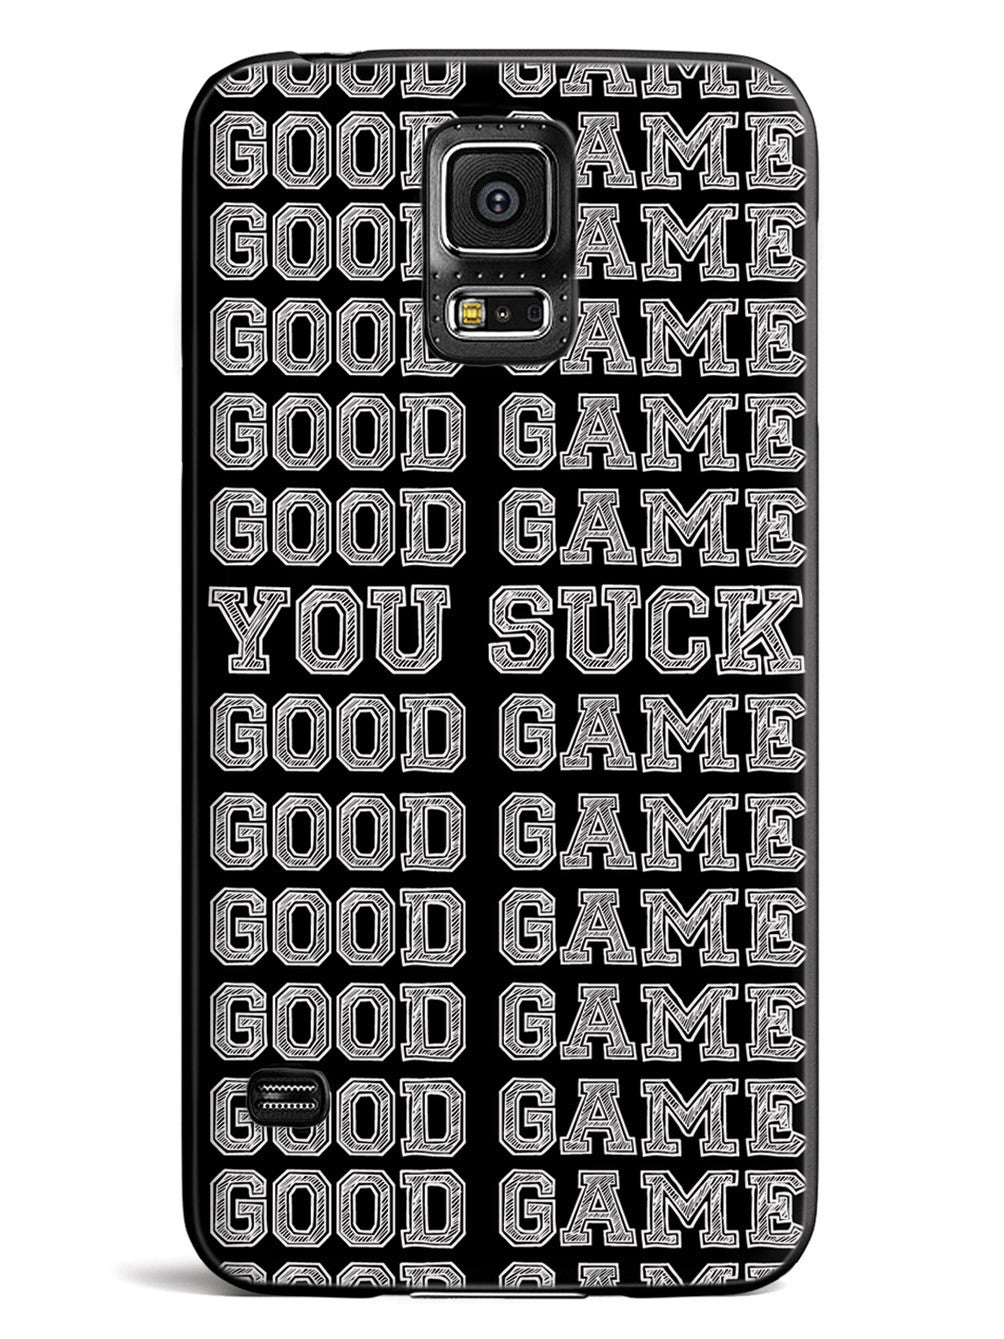 Good Game - You Suck - Black Case